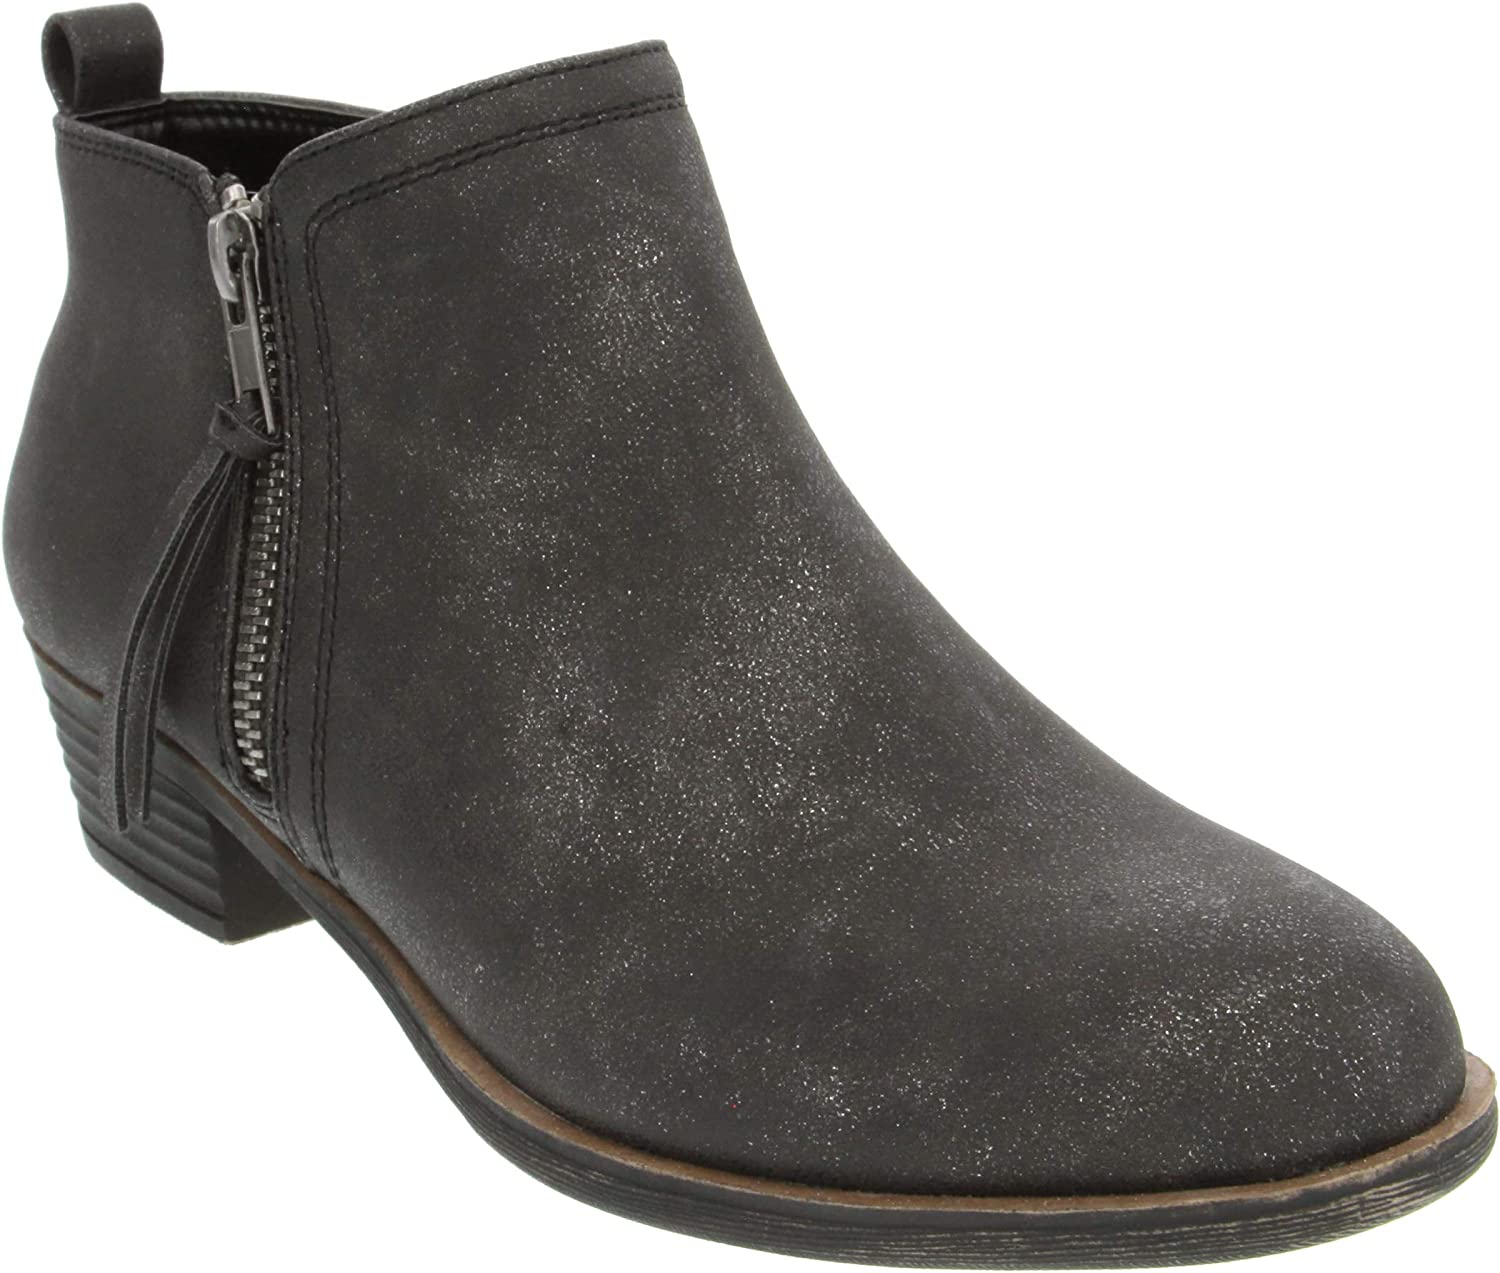 Rampage Women's All Tampa Mall stores are sold Tarragon Bootie Ankle